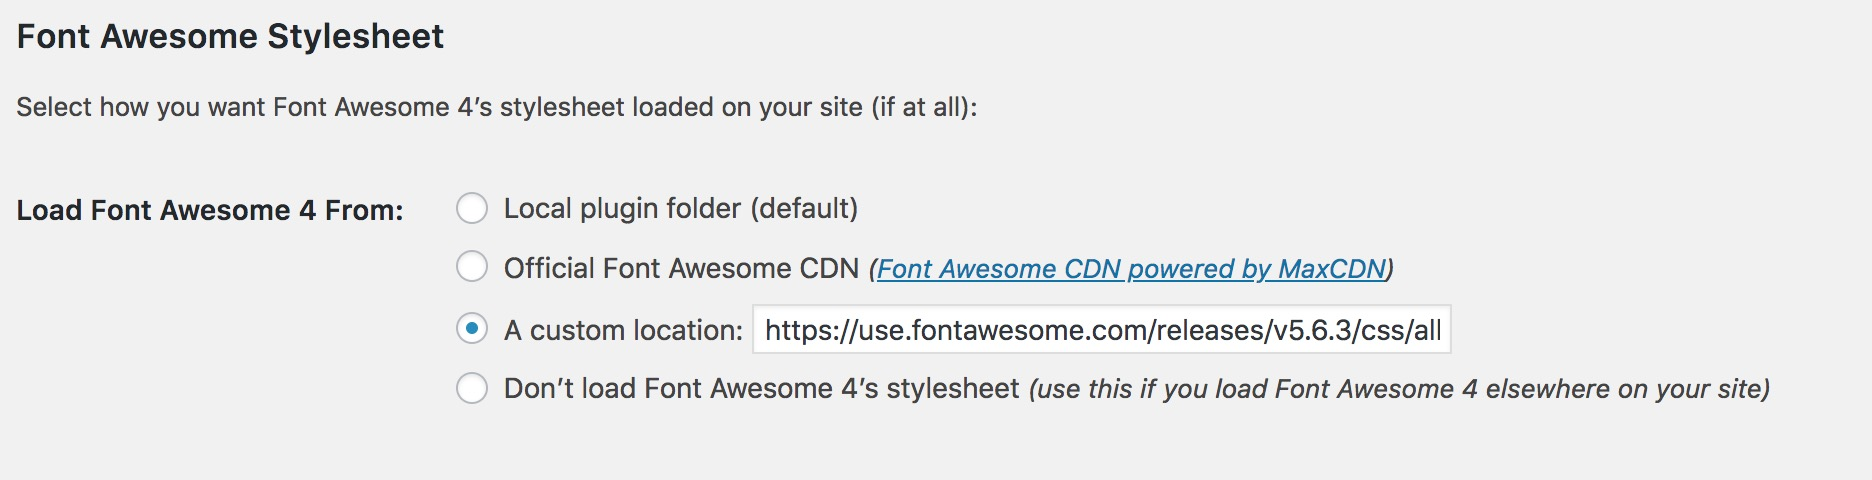 Font Awesome 5 support? · Issue #3 · cogdog/wp-dimension